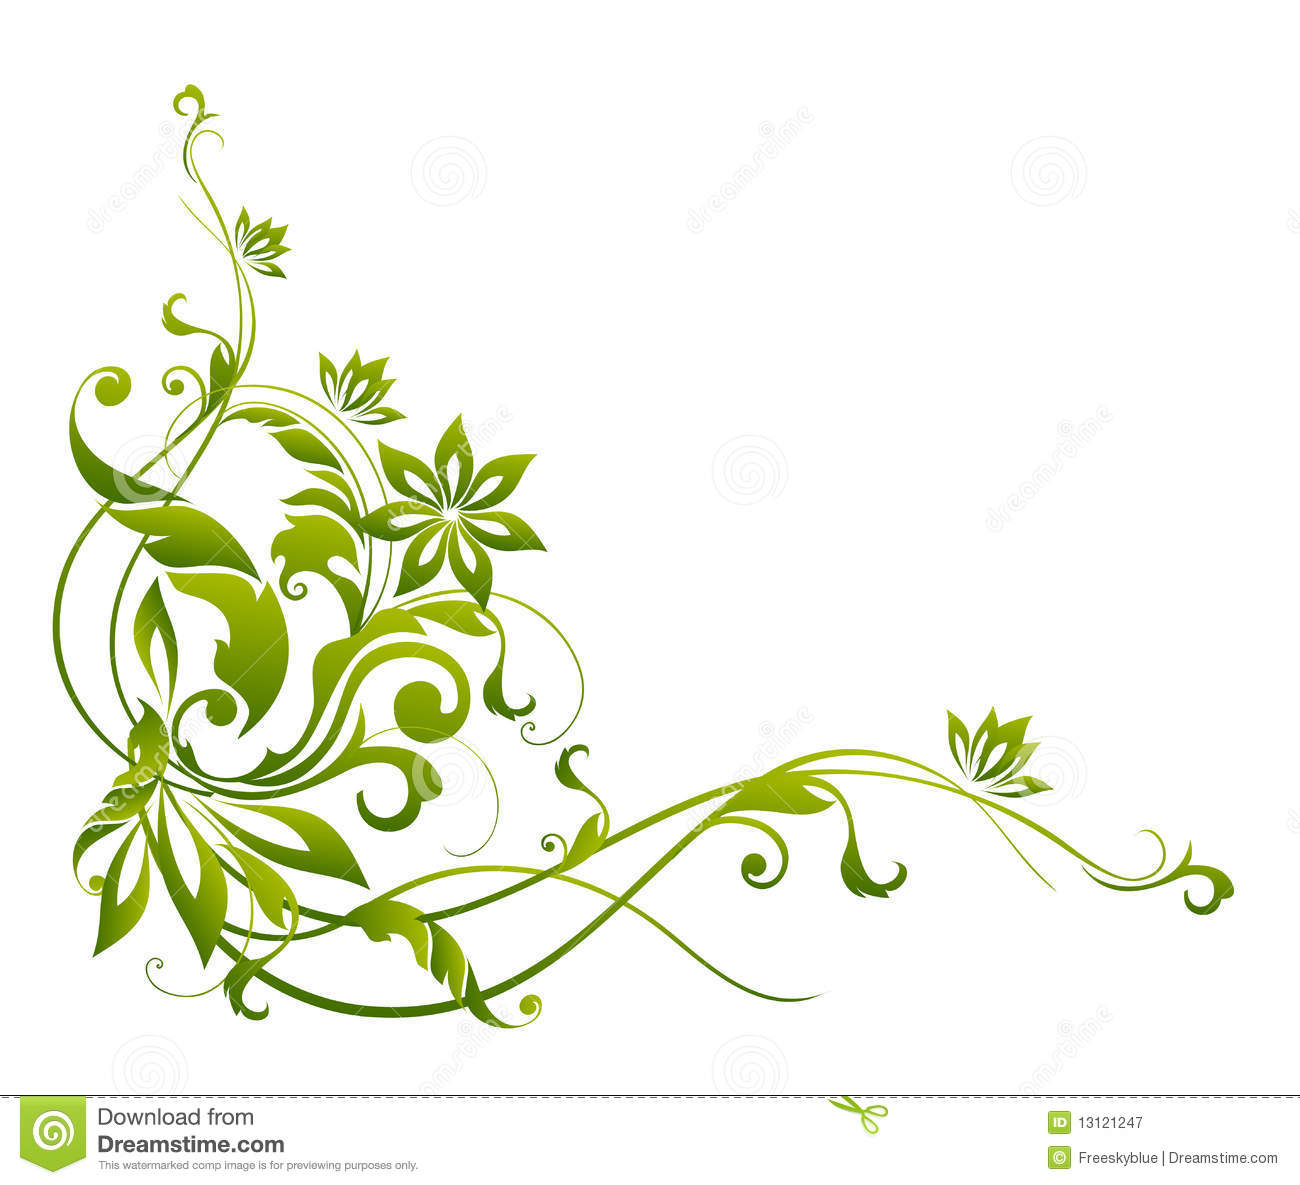 Green and white floral pattern - photo#36